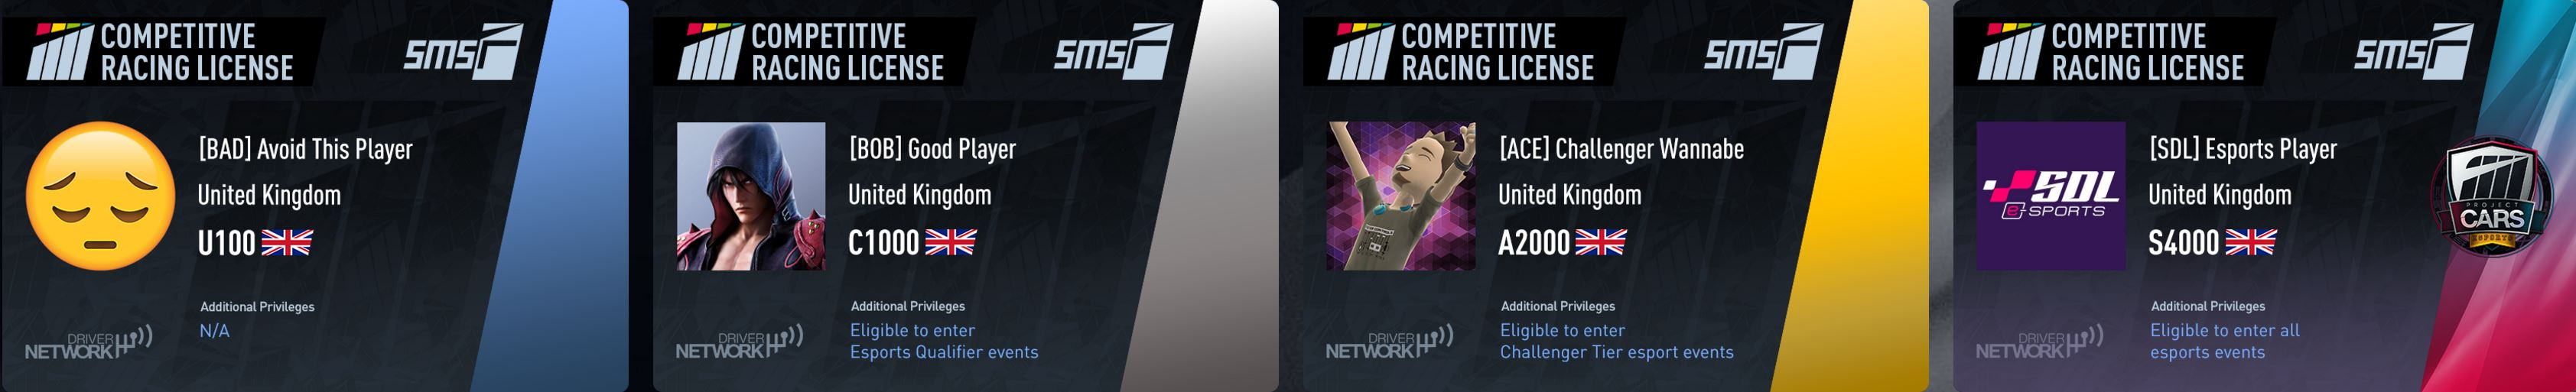 Project CARS 2 competitive racing licenses examples